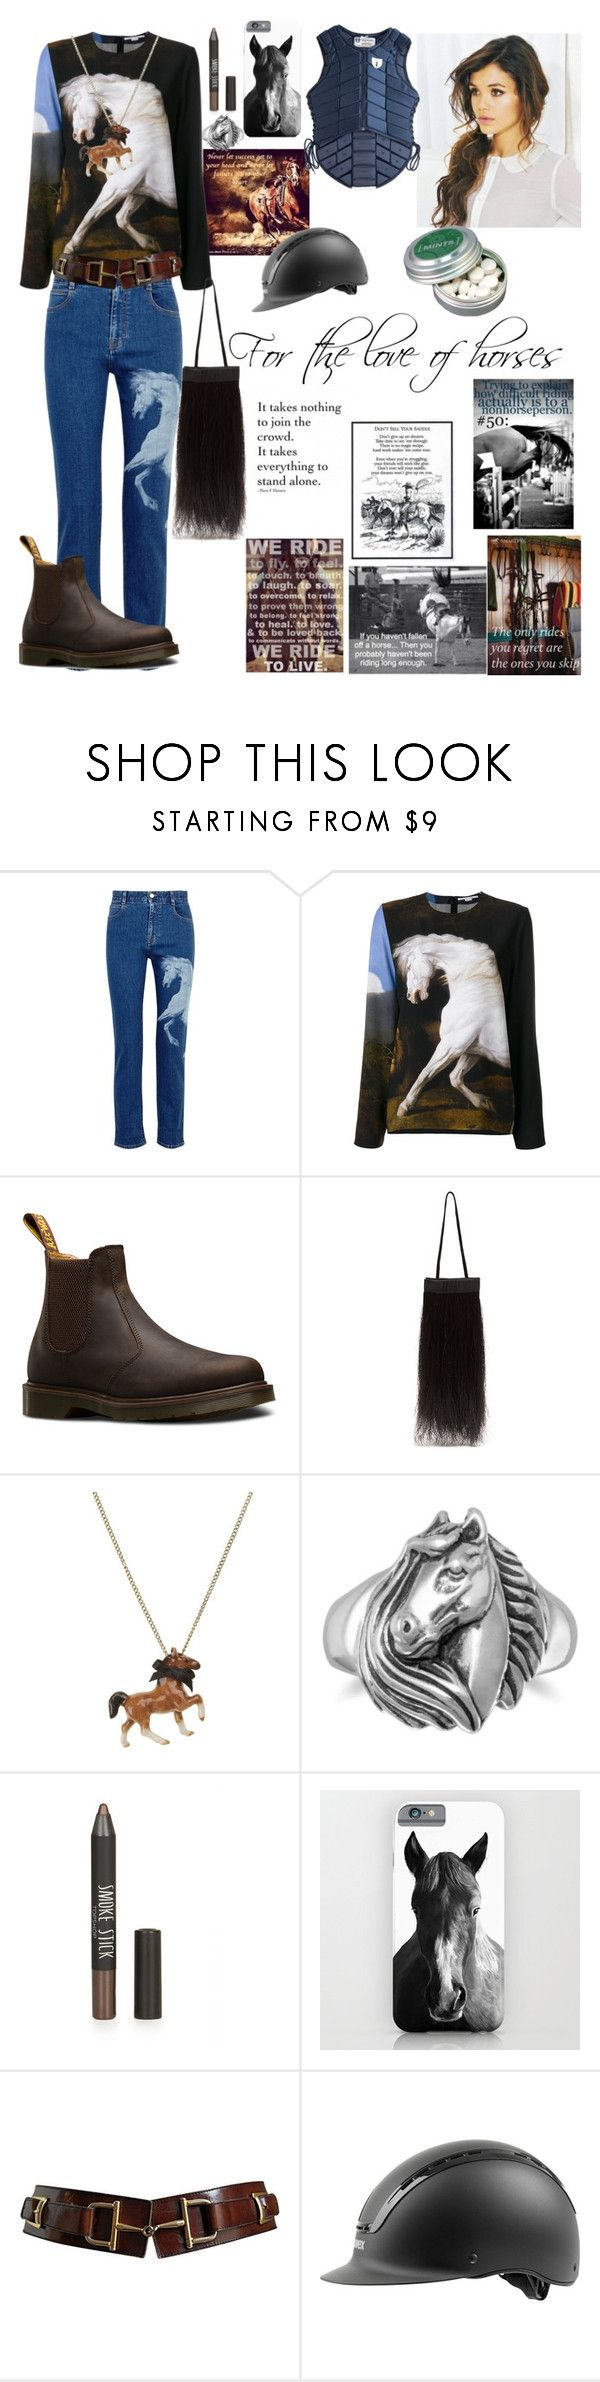 """""""For the love of horses"""" by lu-lawrence ❤ liked on Polyvore featuring STELLA McCARTNEY, Dr. Martens, Helmut Lang, And Mary, BillyTheTree, Topshop and Uvex"""